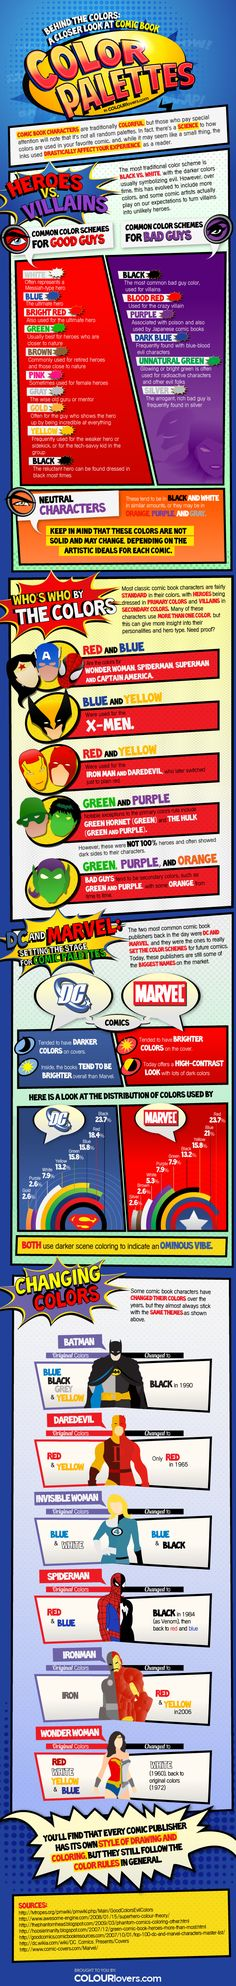 Color Palette of the Comic Book #infographic